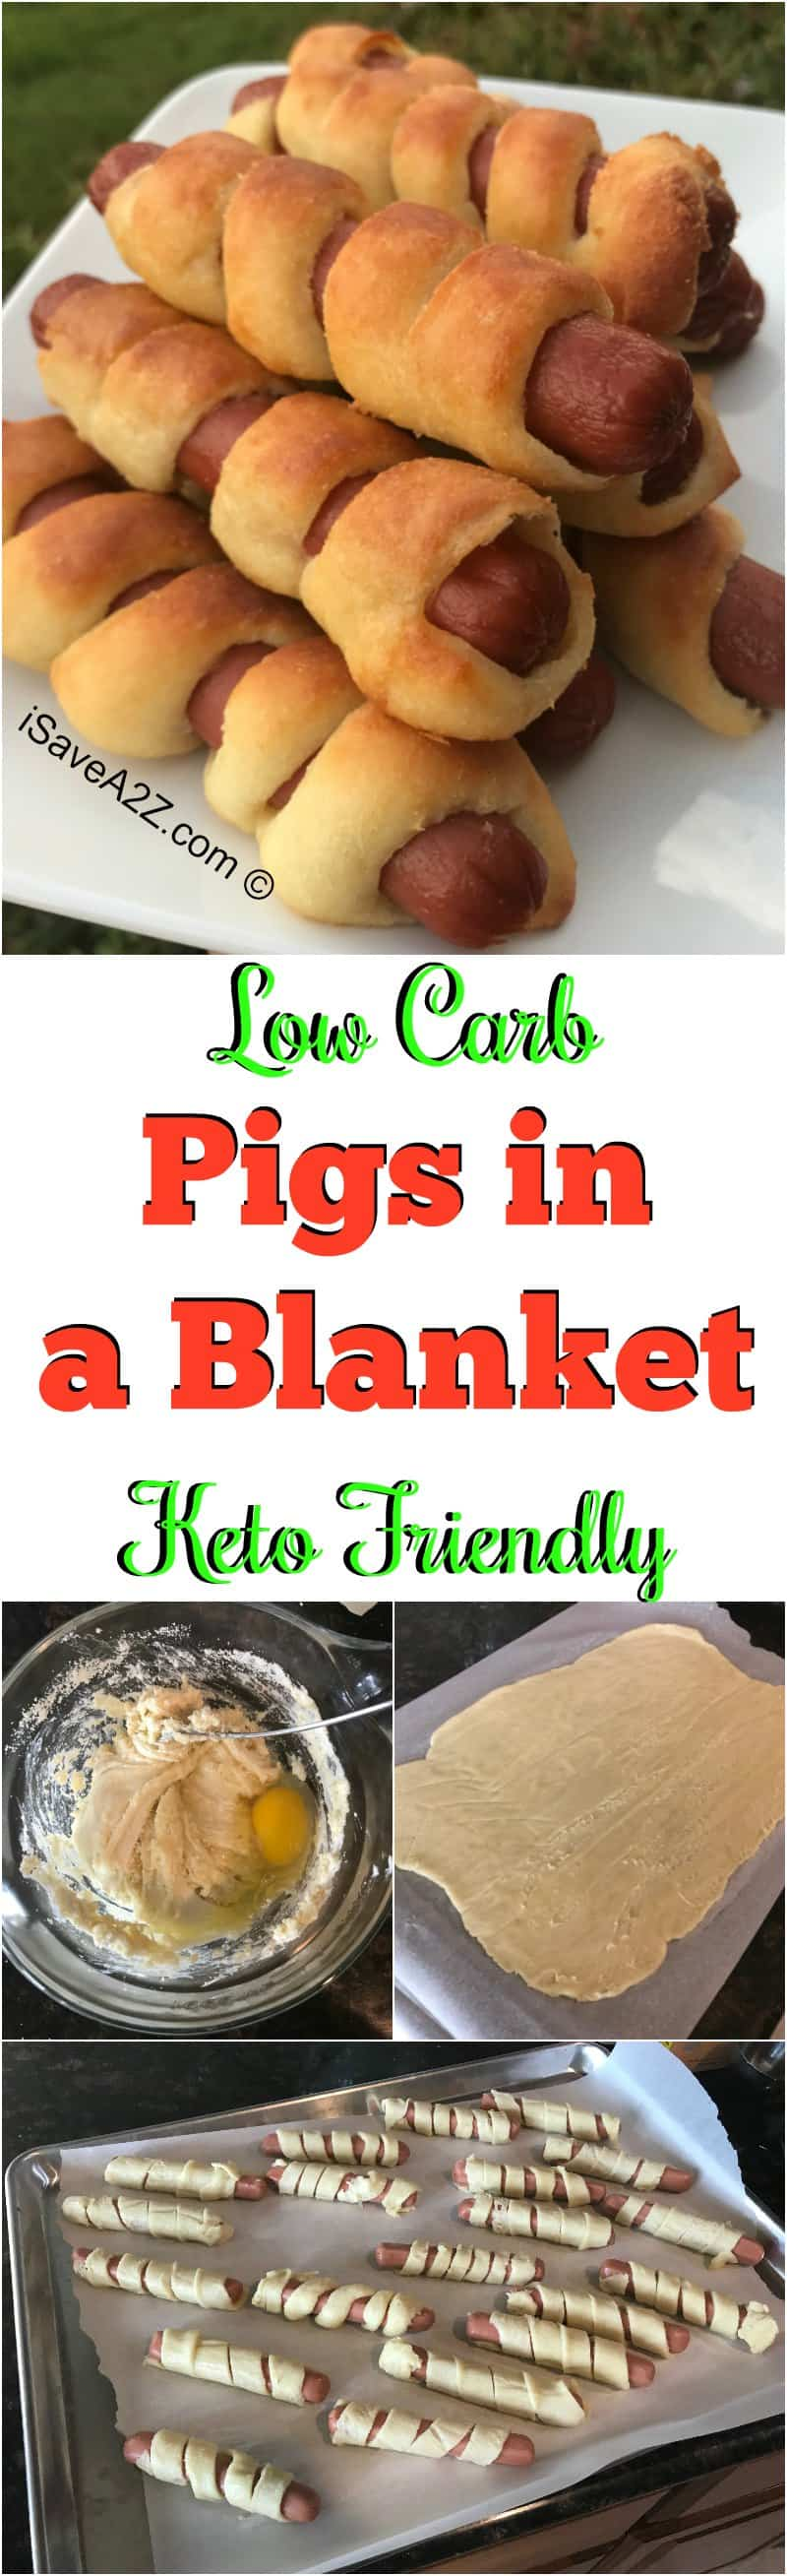 Low Carb Keto Pigs in a Blanket Recipe made with Fat Head Dough